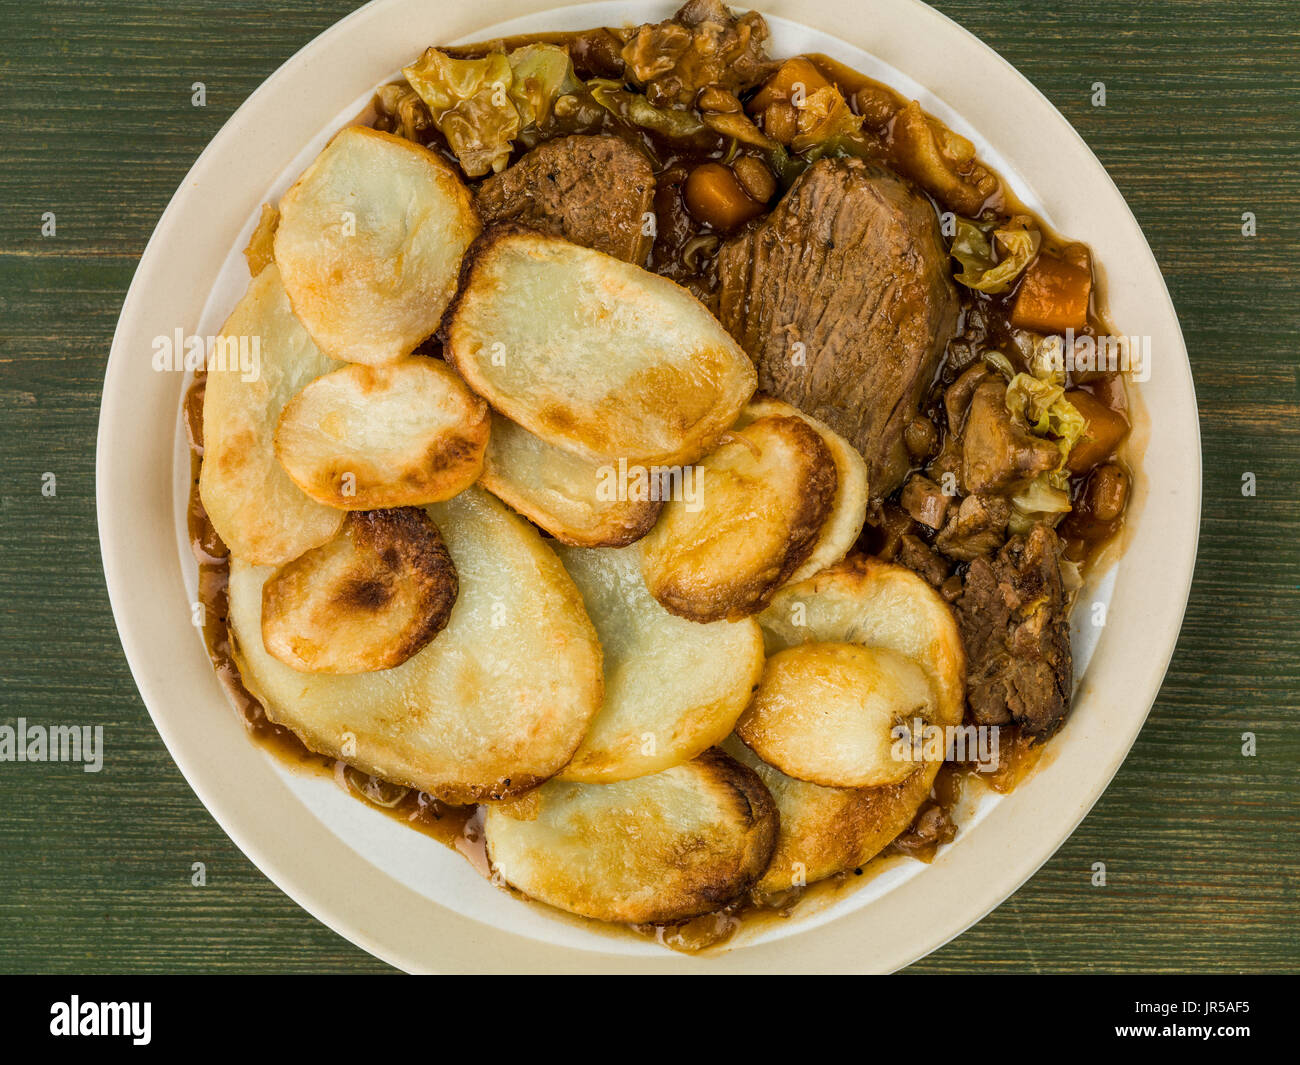 Lamb Hotpot With Sliced Potatoes and Onion Gravy Against a Green Wooden Background - Stock Image